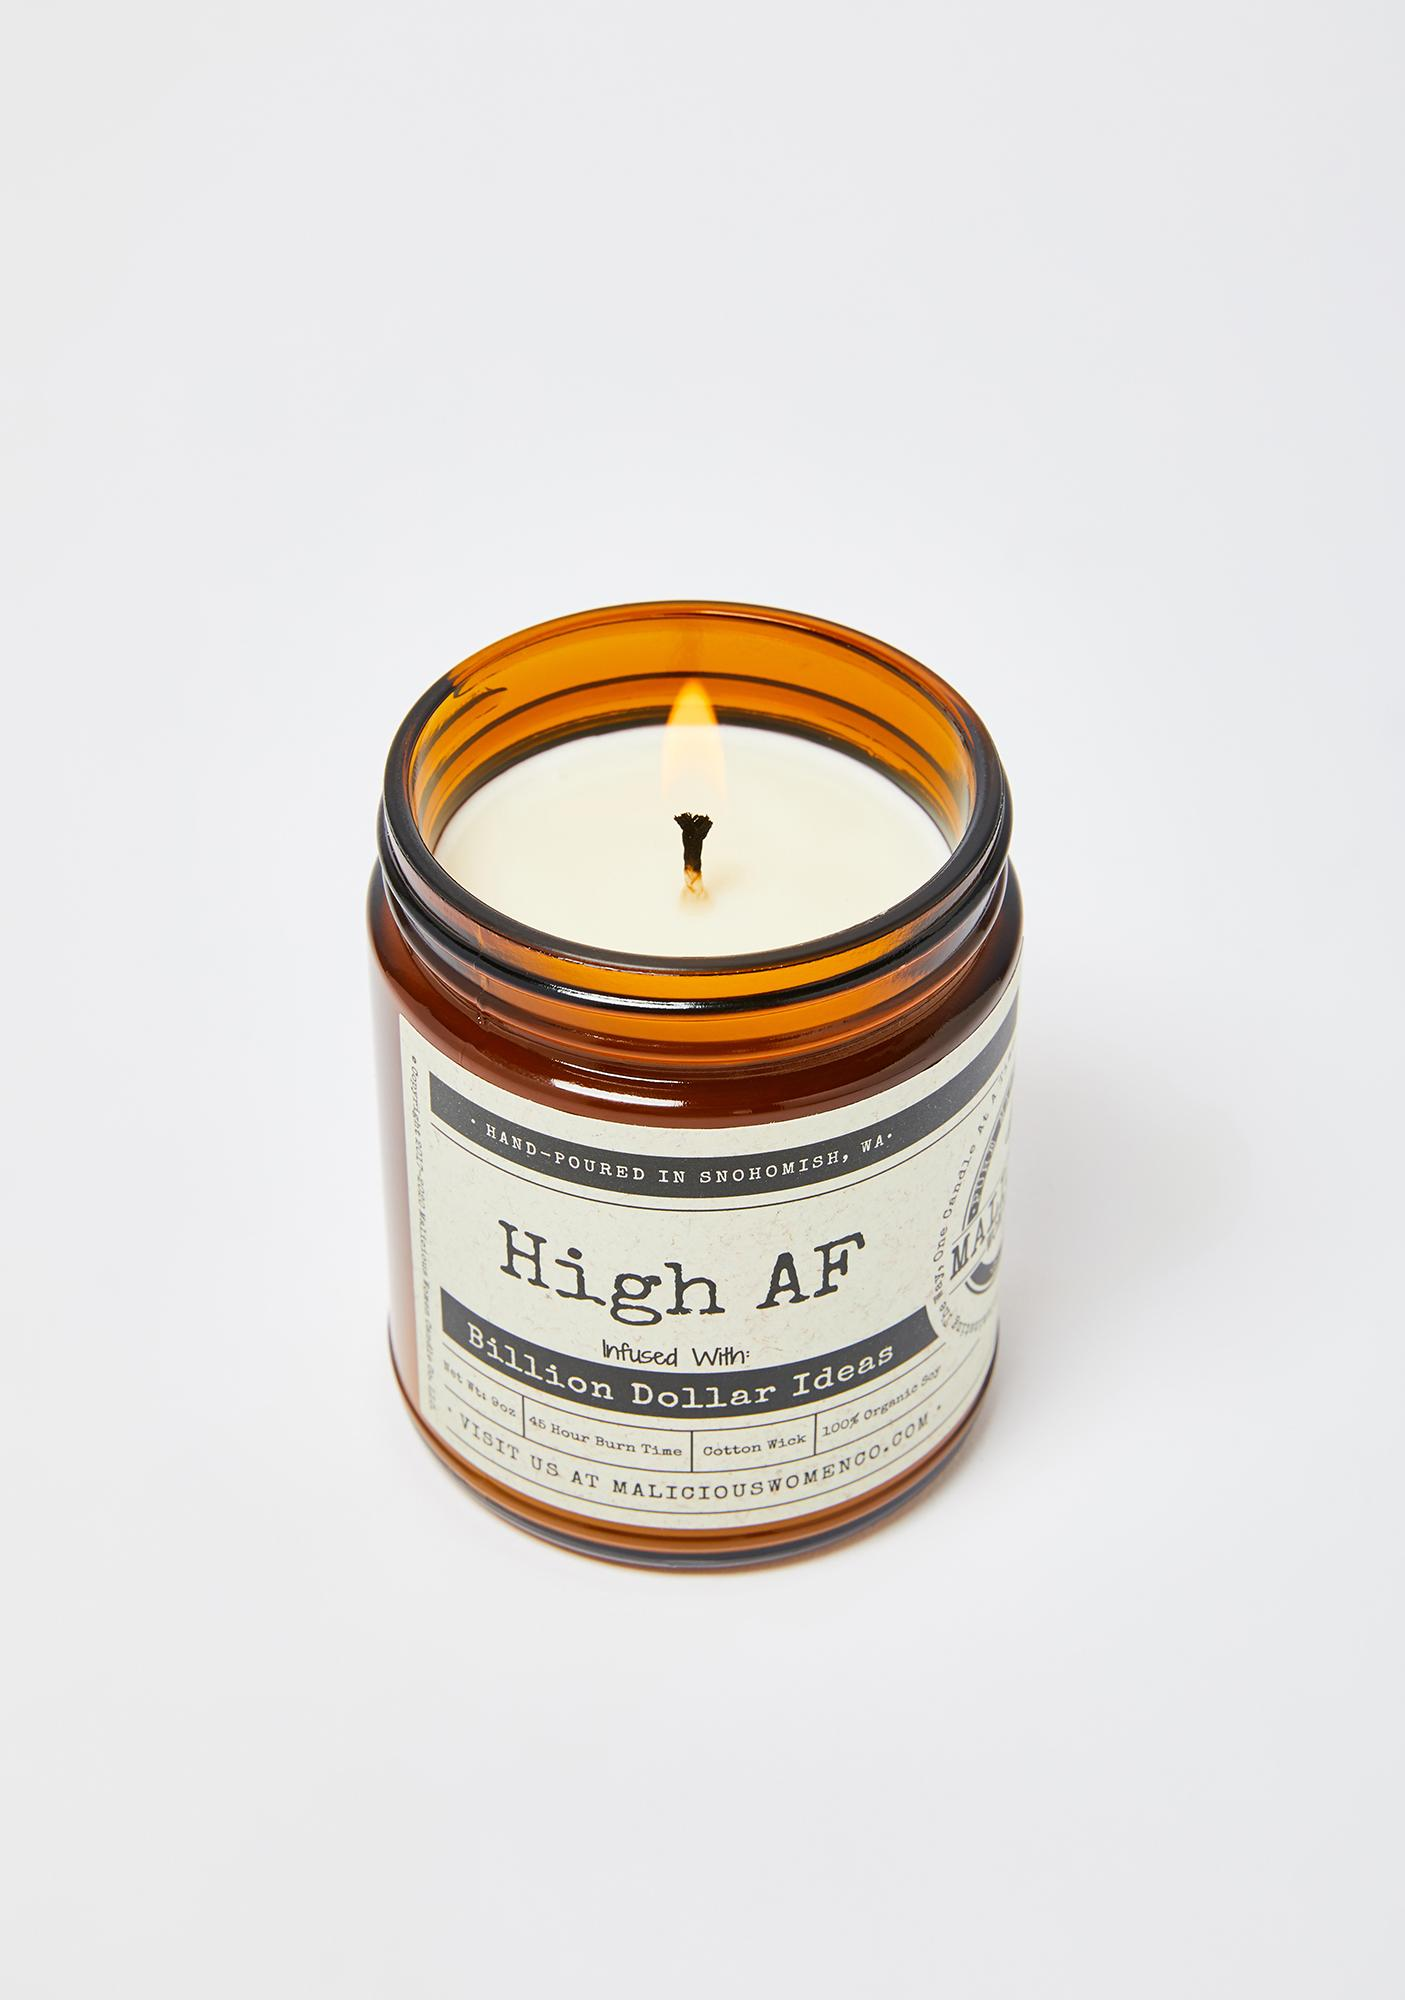 Malicious Women Company High AF Sweet Hemp Flower & Spices Candle